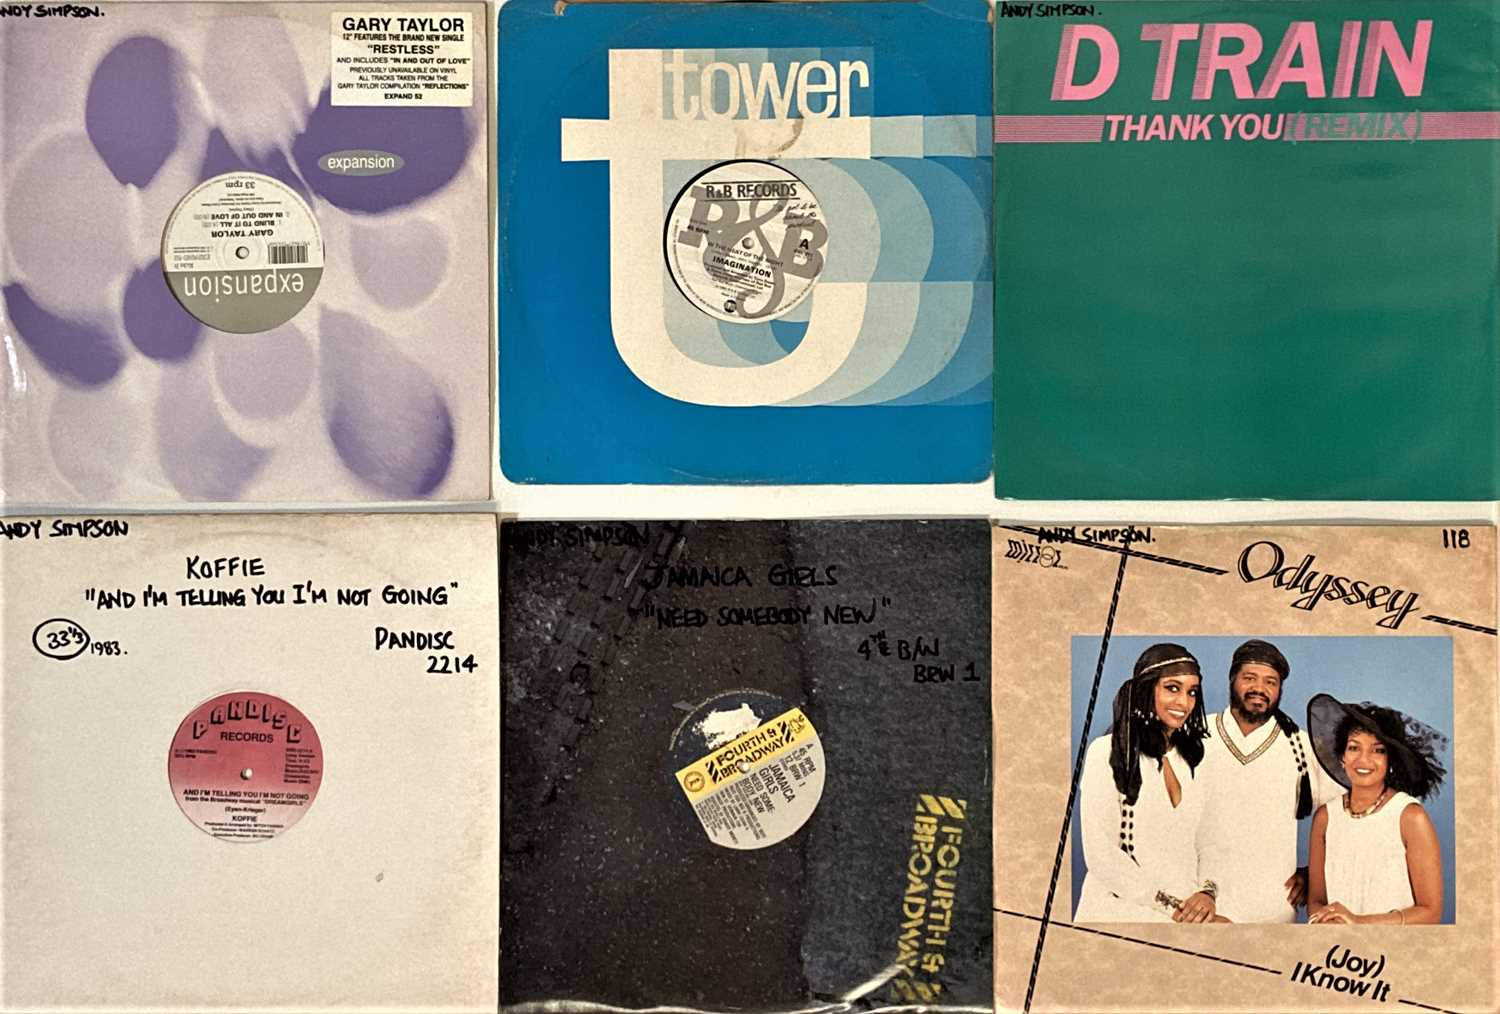 """DISCO/SOUL/HIGH NRG - 12"""" COLLECTION. - Image 2 of 5"""